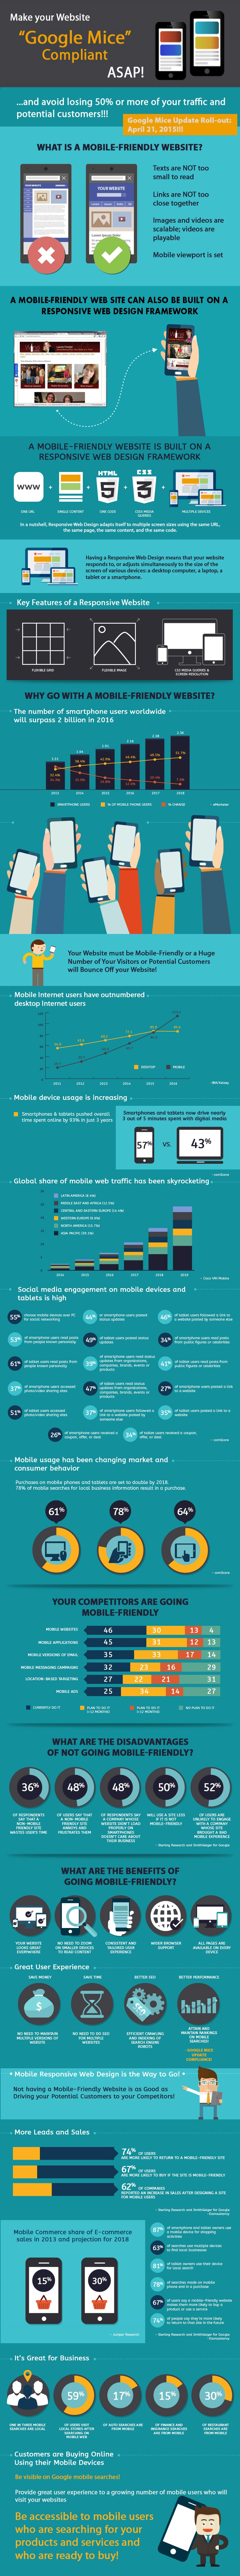 How to make your website mobile infographic